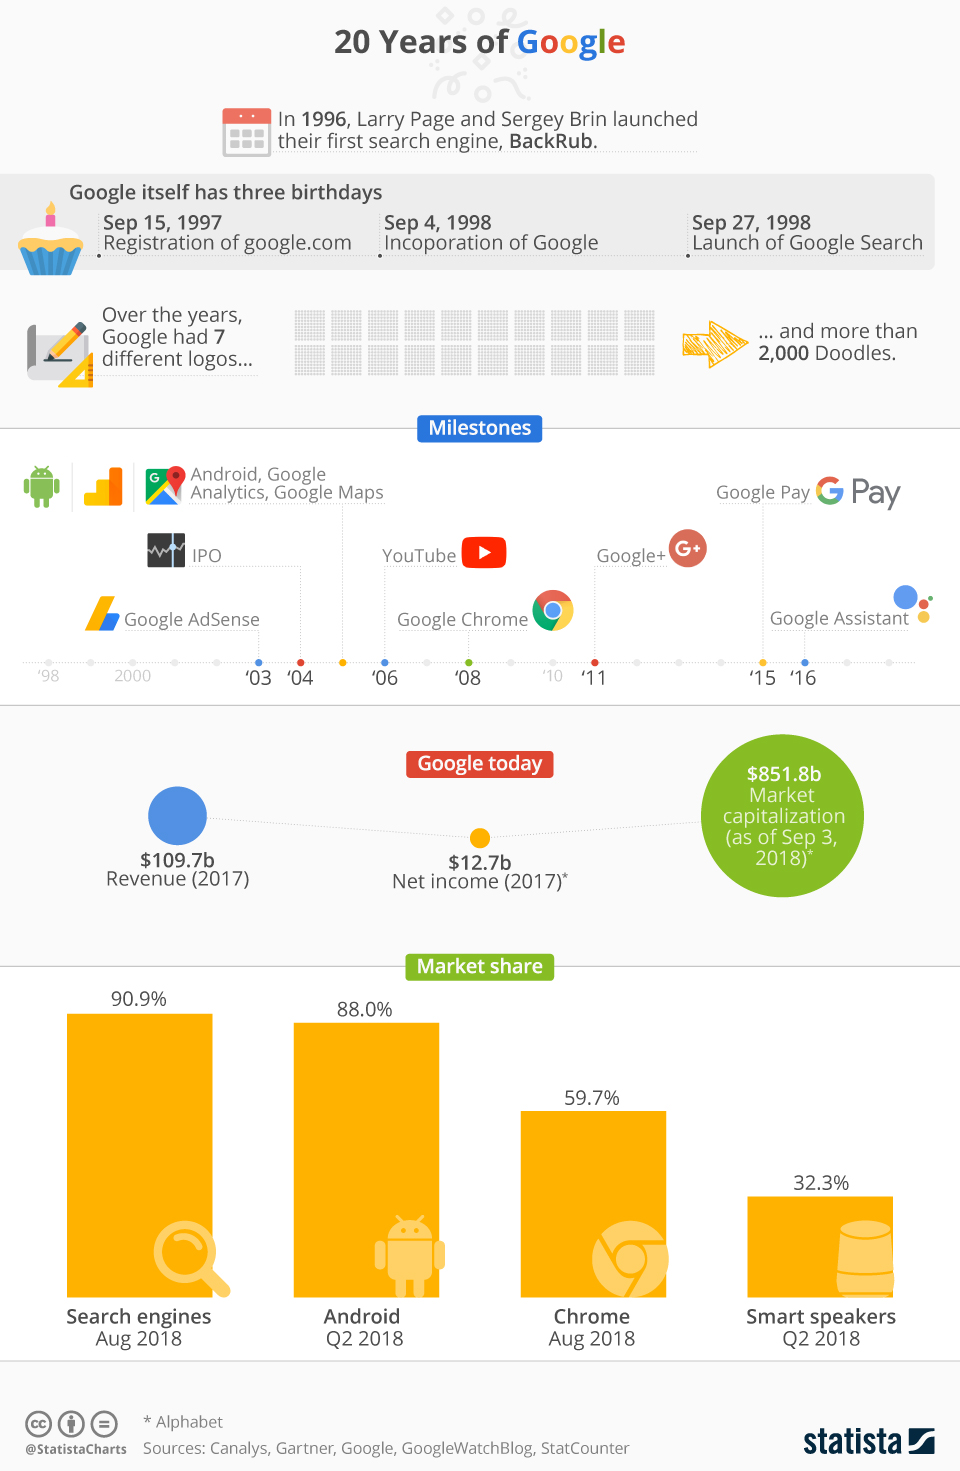 This infographic sums up some interesting facts from 20 years of Google.